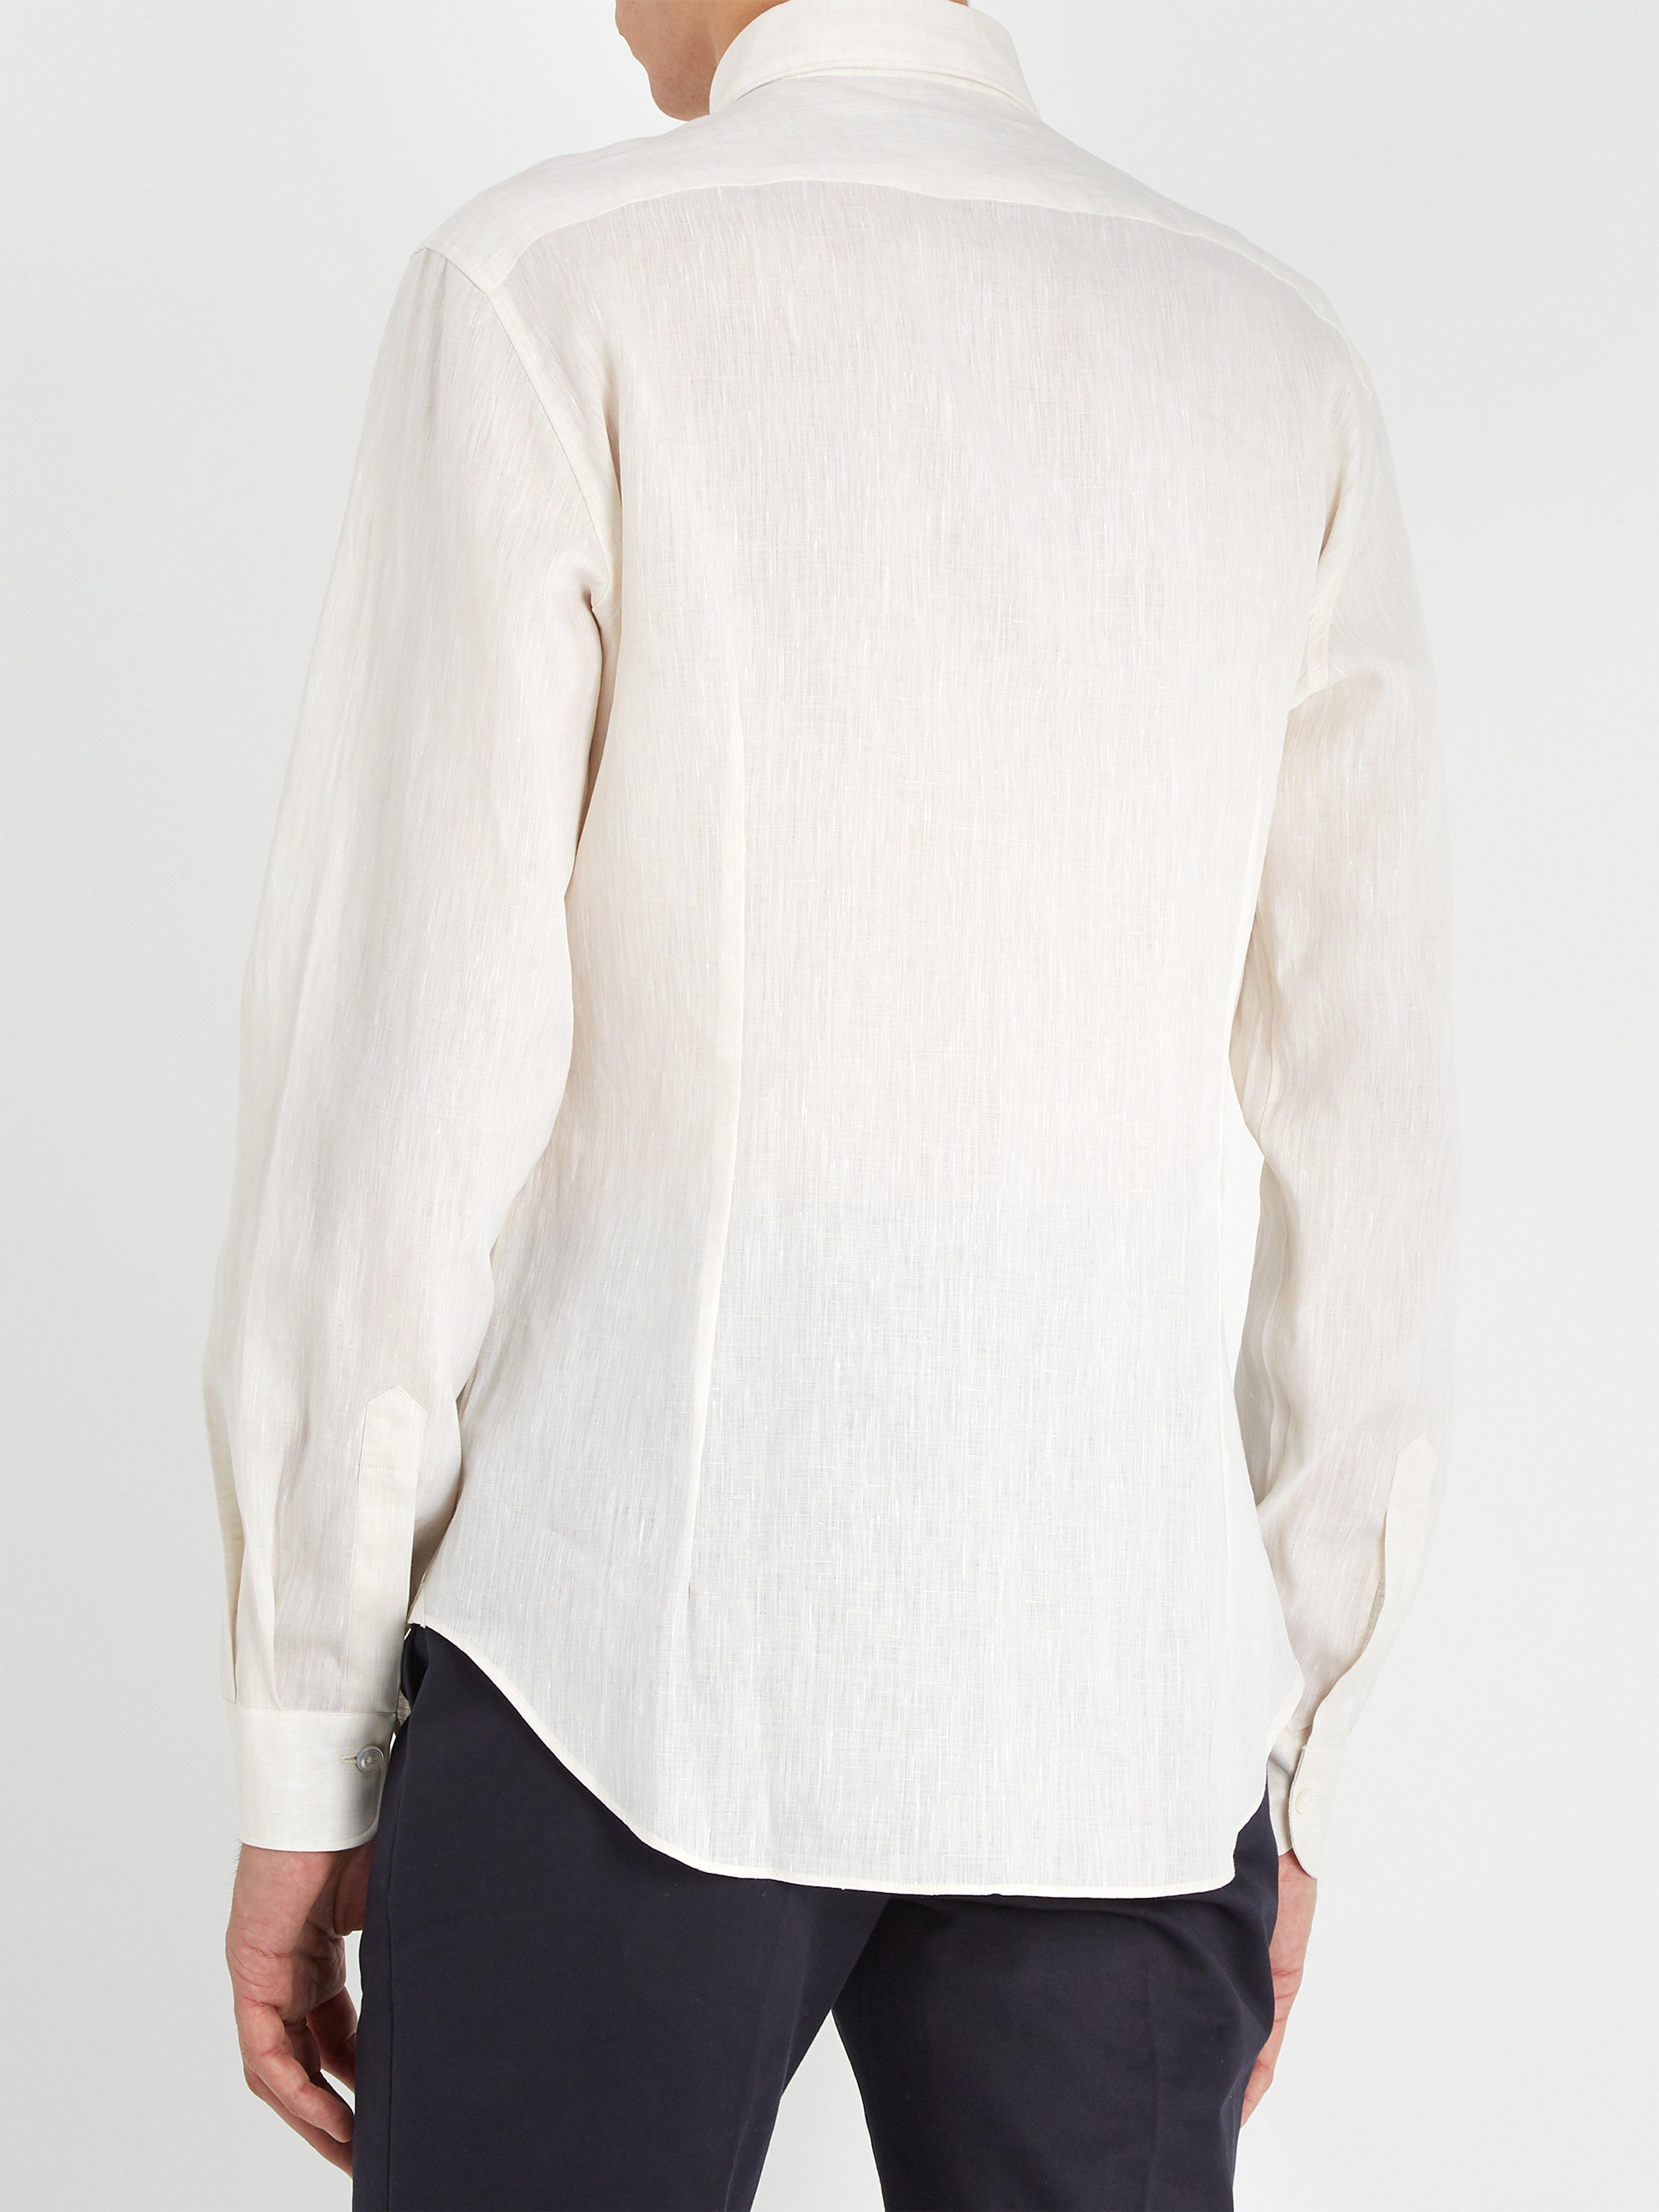 Thom Sweeney Patch-pocket Spread-collar Linen Shirt in Beige (Natural) for Men